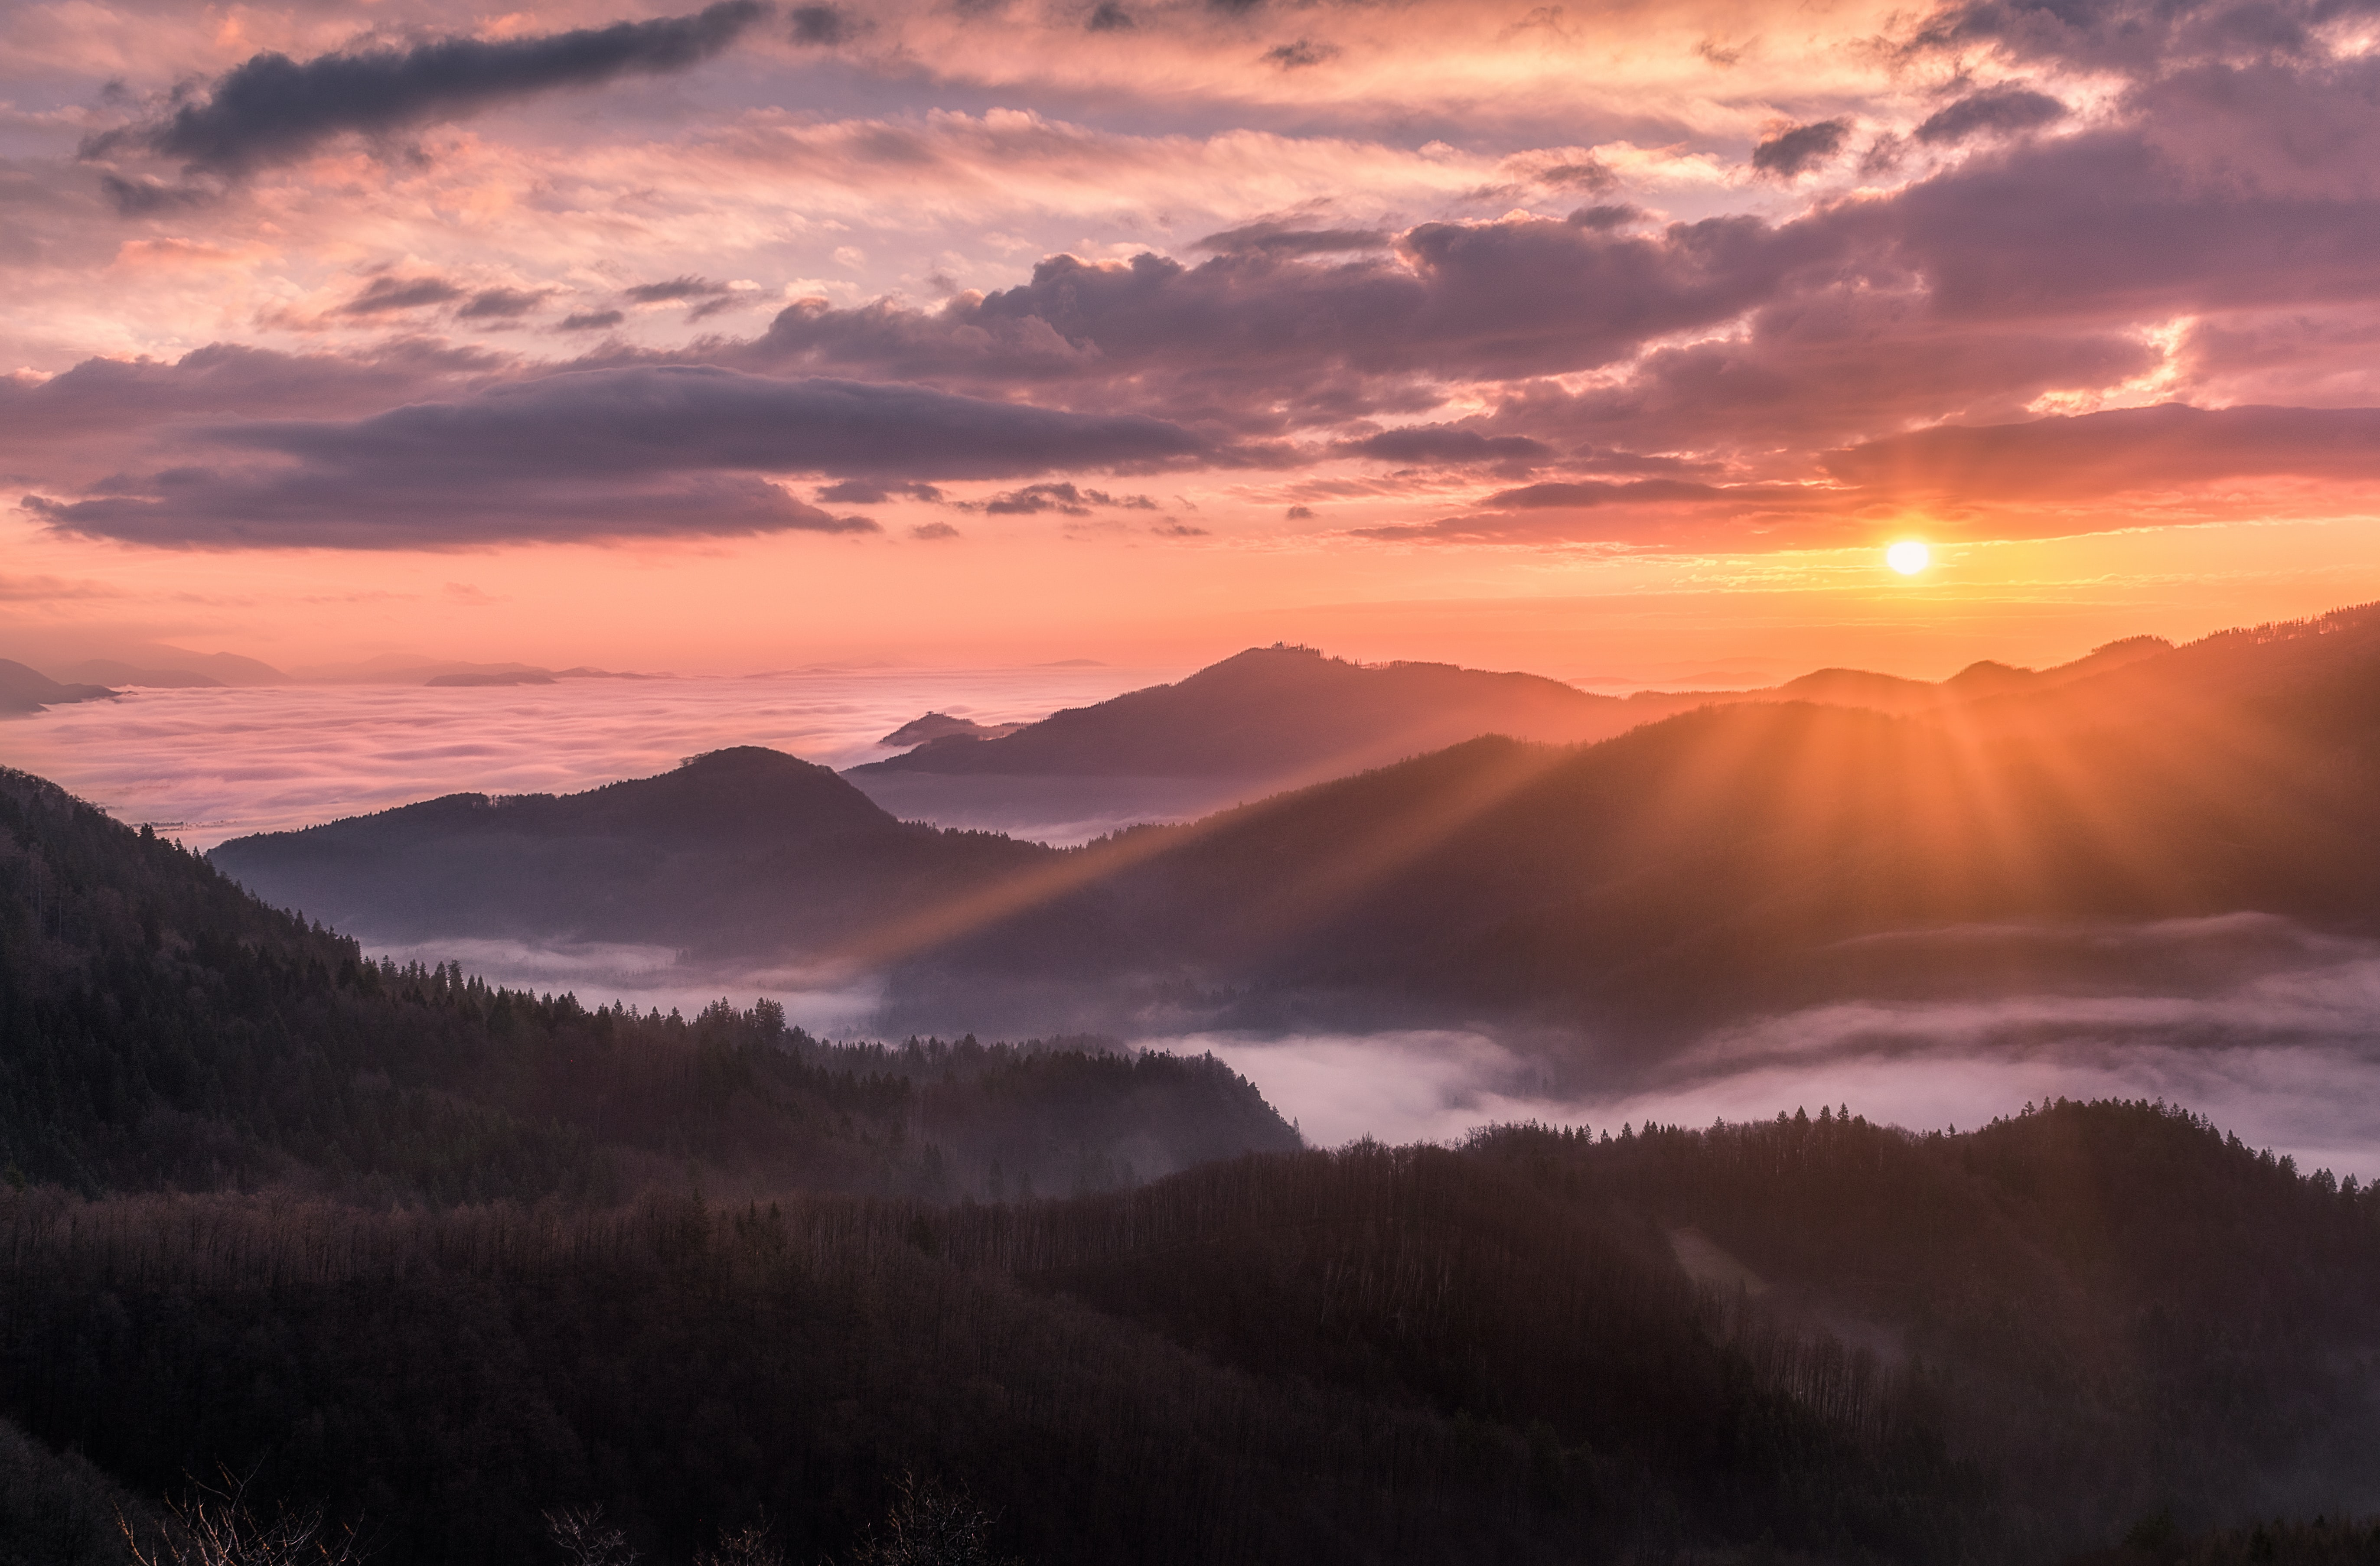 overlooking view of mountains and sunrise